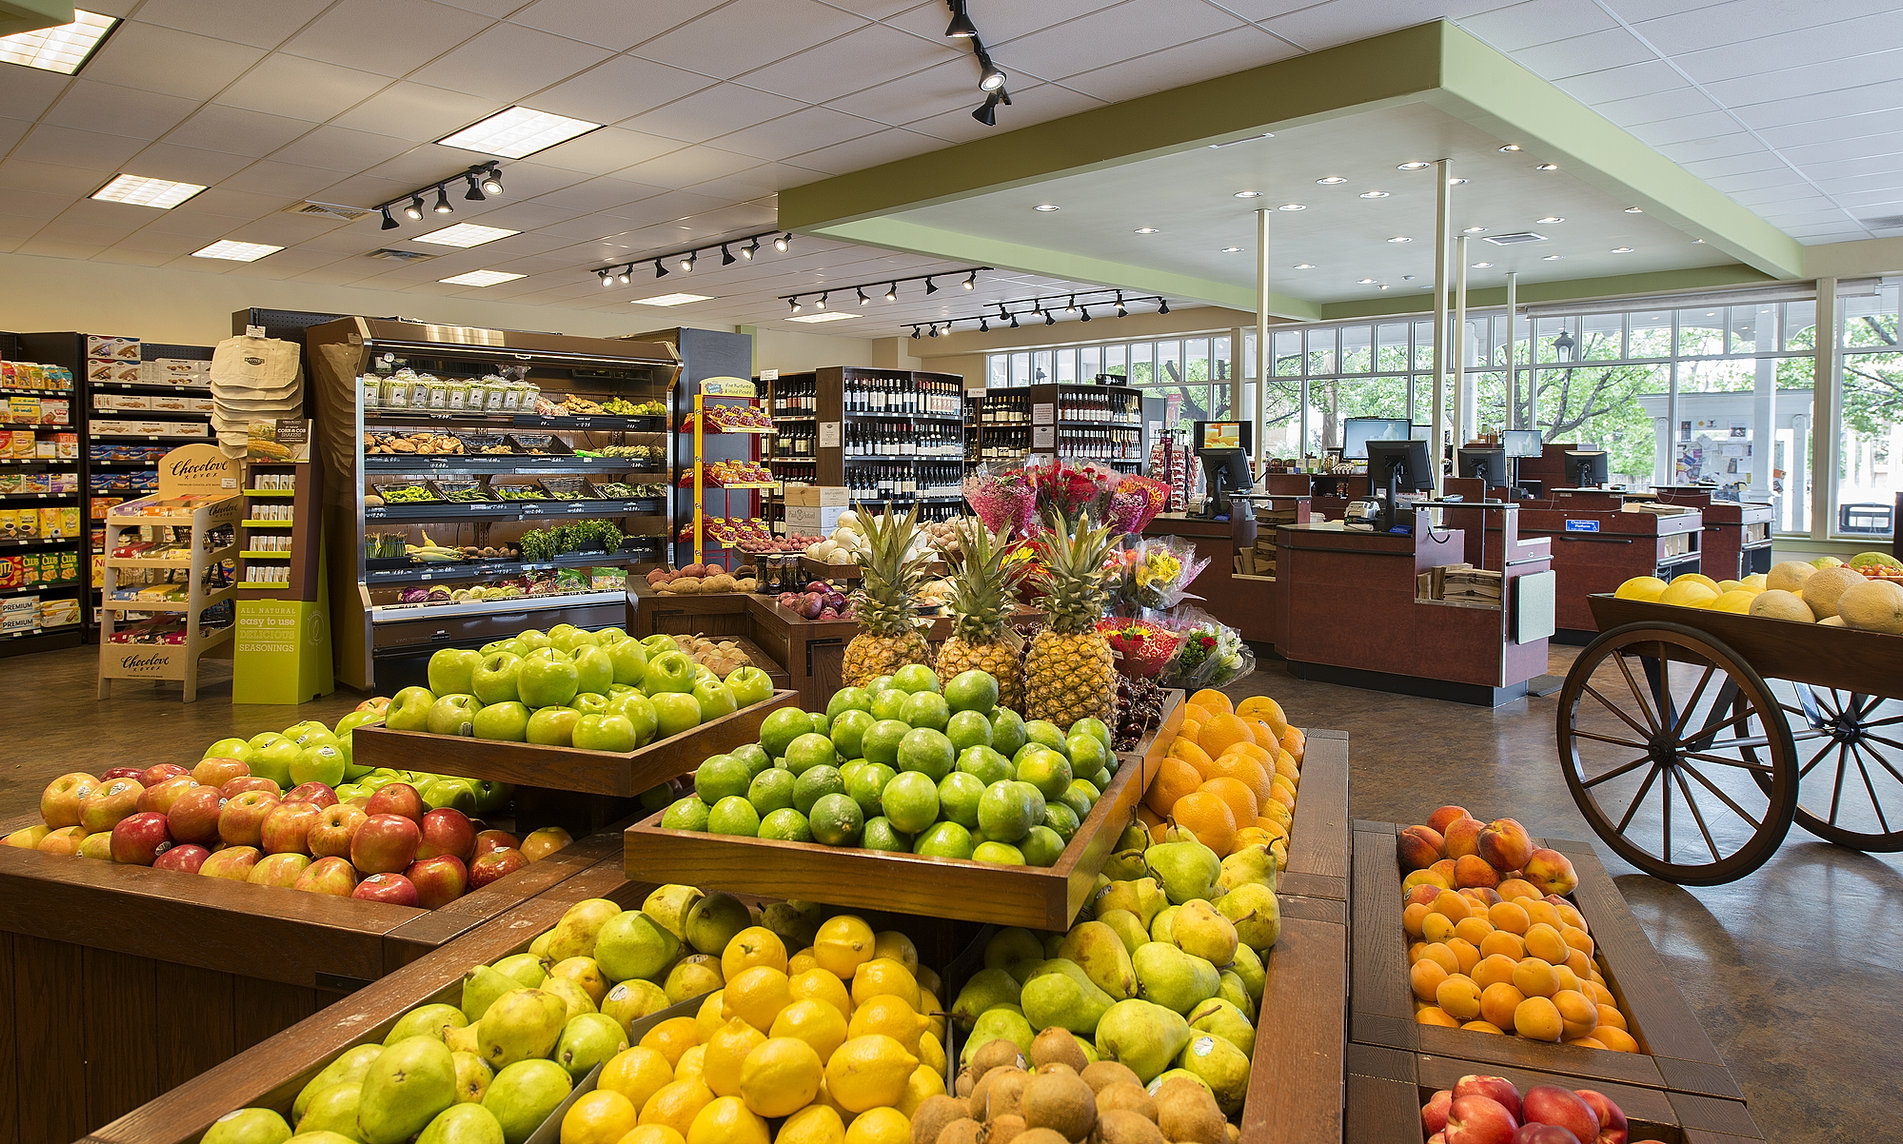 Bringing your grocery stores shopping experience and personality to life